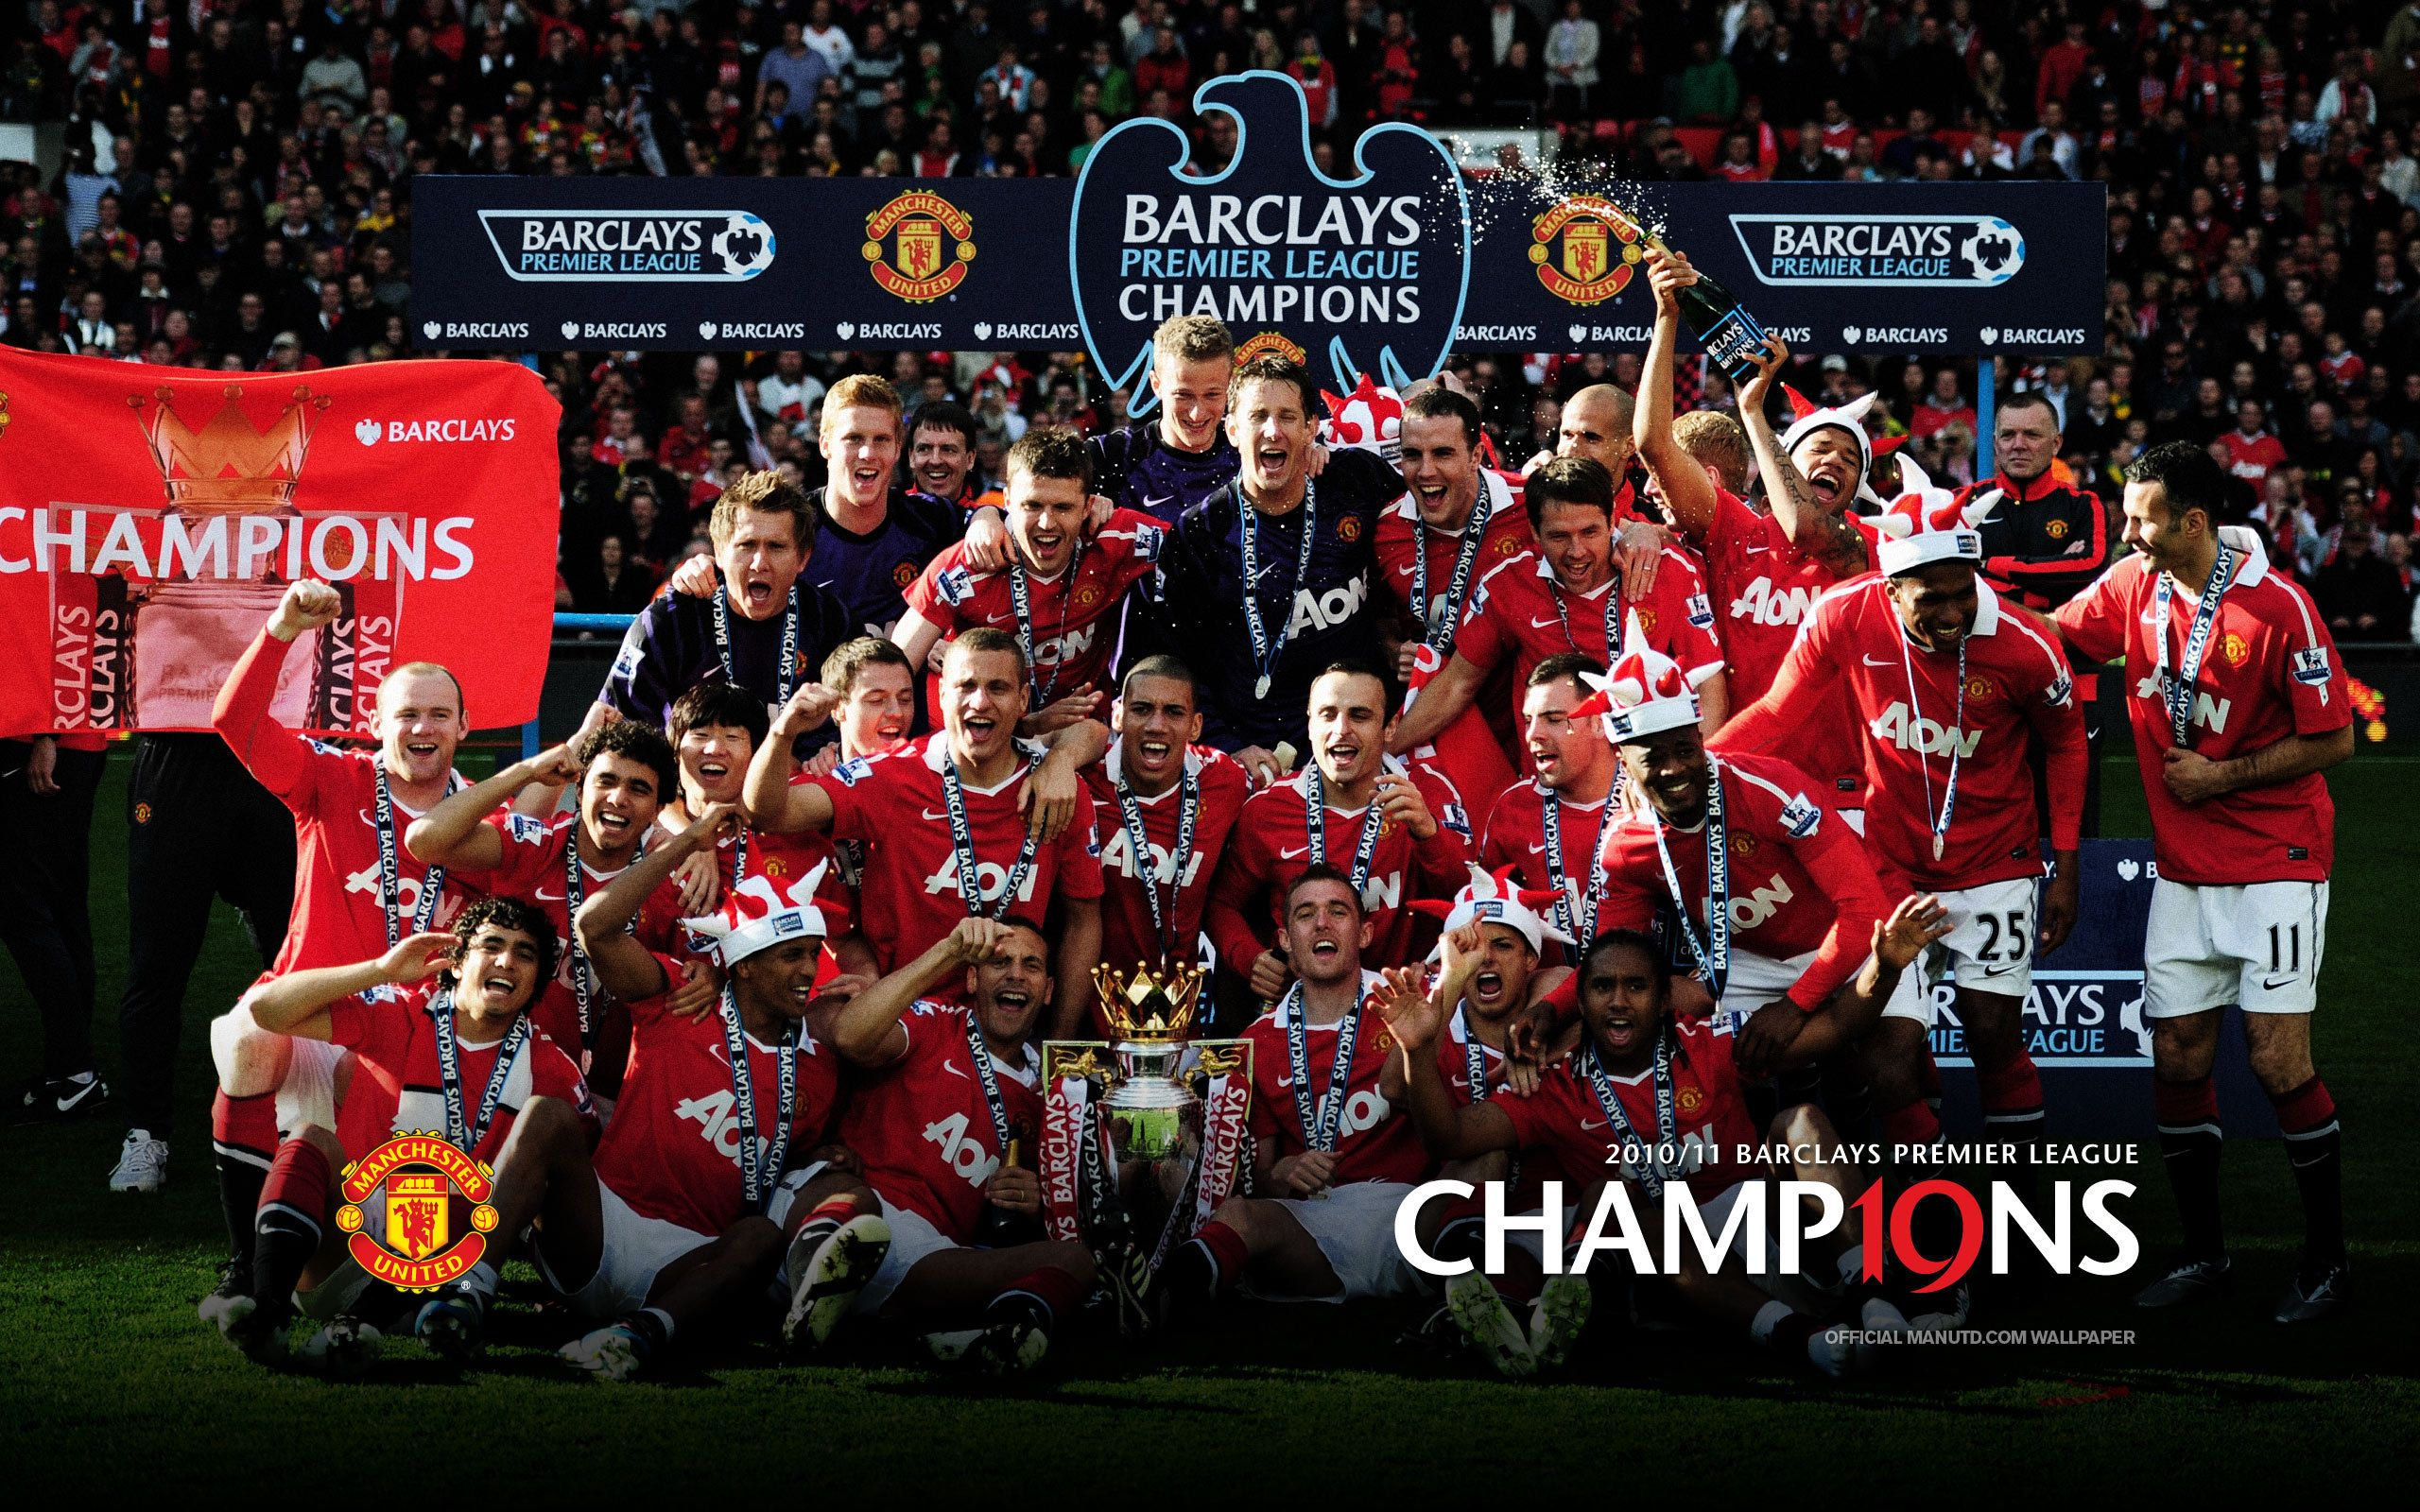 Football Manchester United Mu 01 Hd Wallpaper Desktop